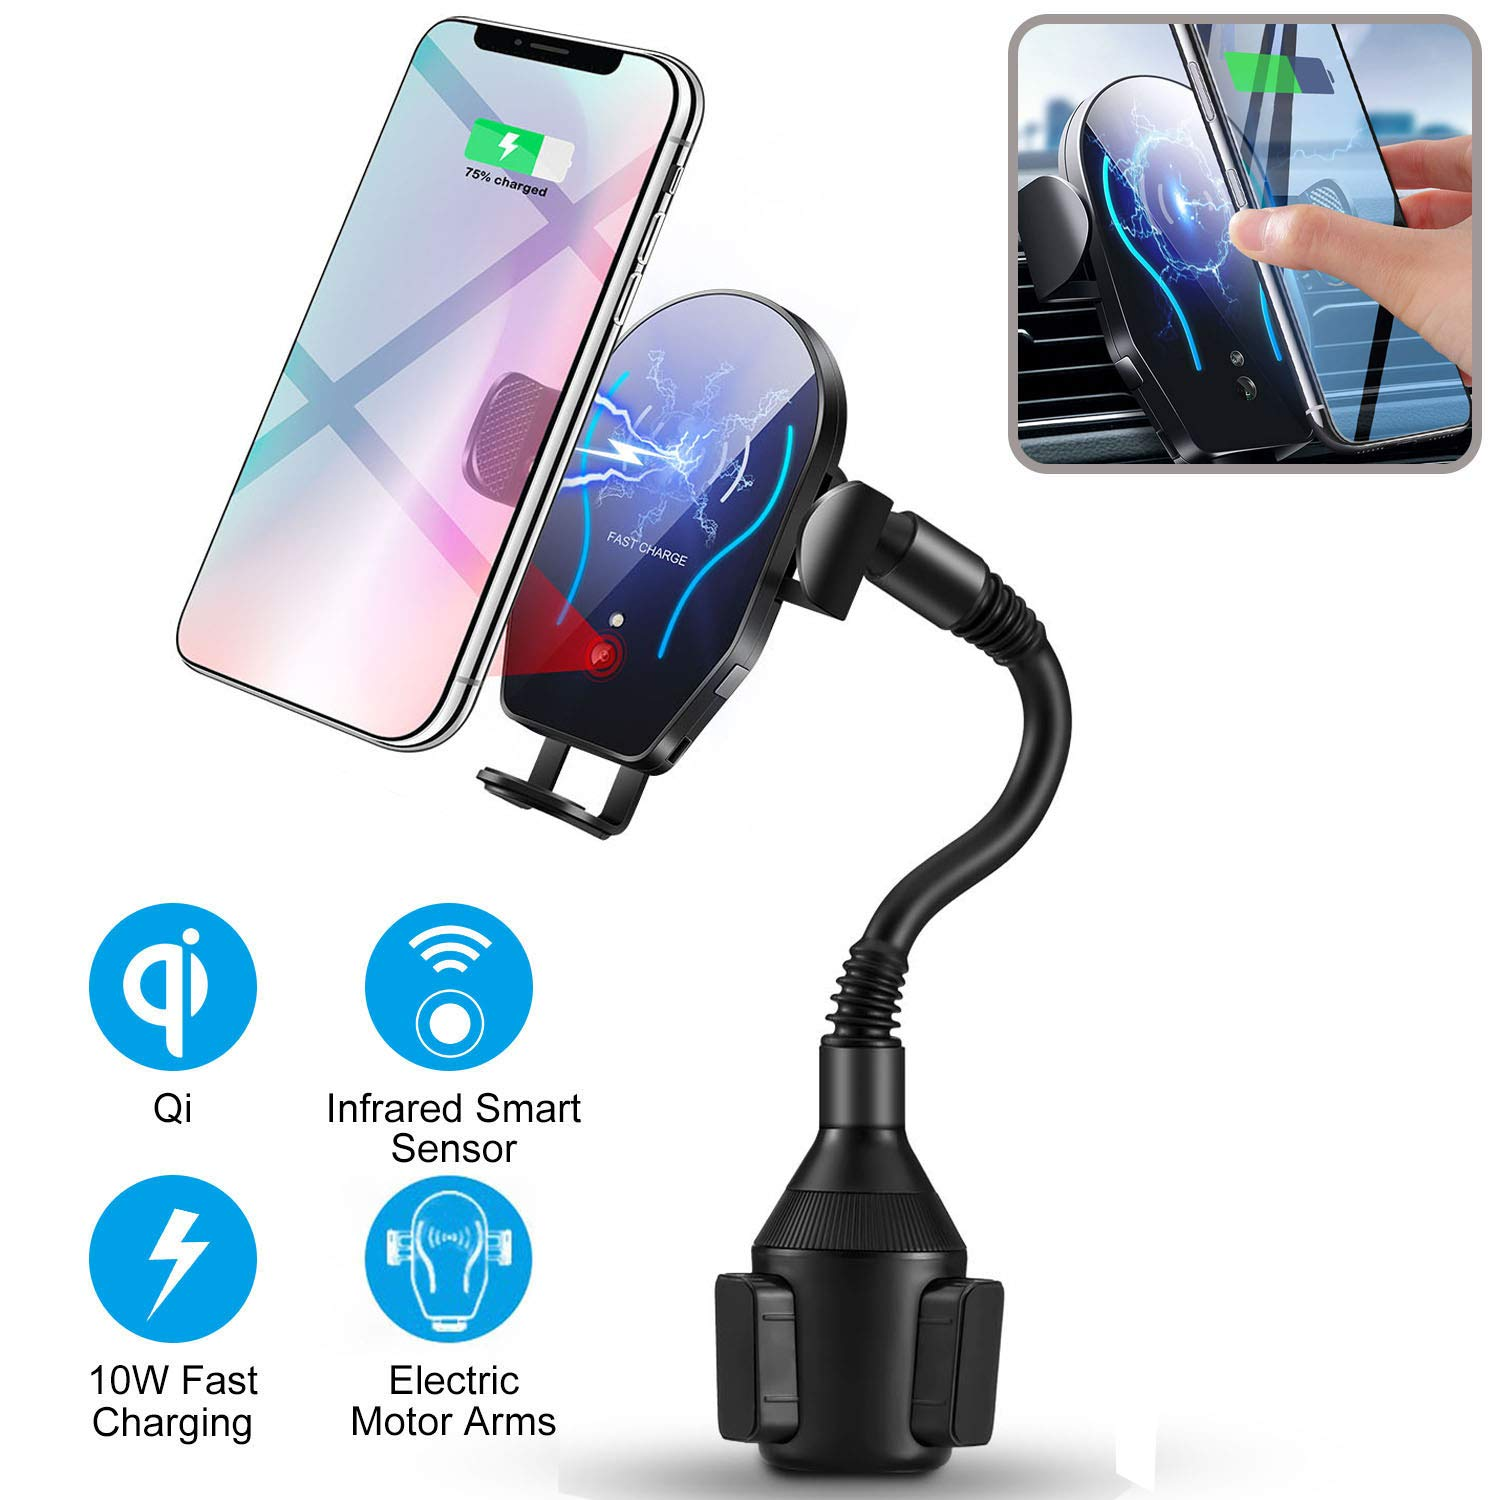 Flow.month Wireless Car Charger-Cup Phone Holder Mount,Automatic Infrared Smart Sensor Clamping Qi 10W 7.5W Fast Universal Adjustable Cell Phone Wireless Charging Air Vent Cradle by Flow.month